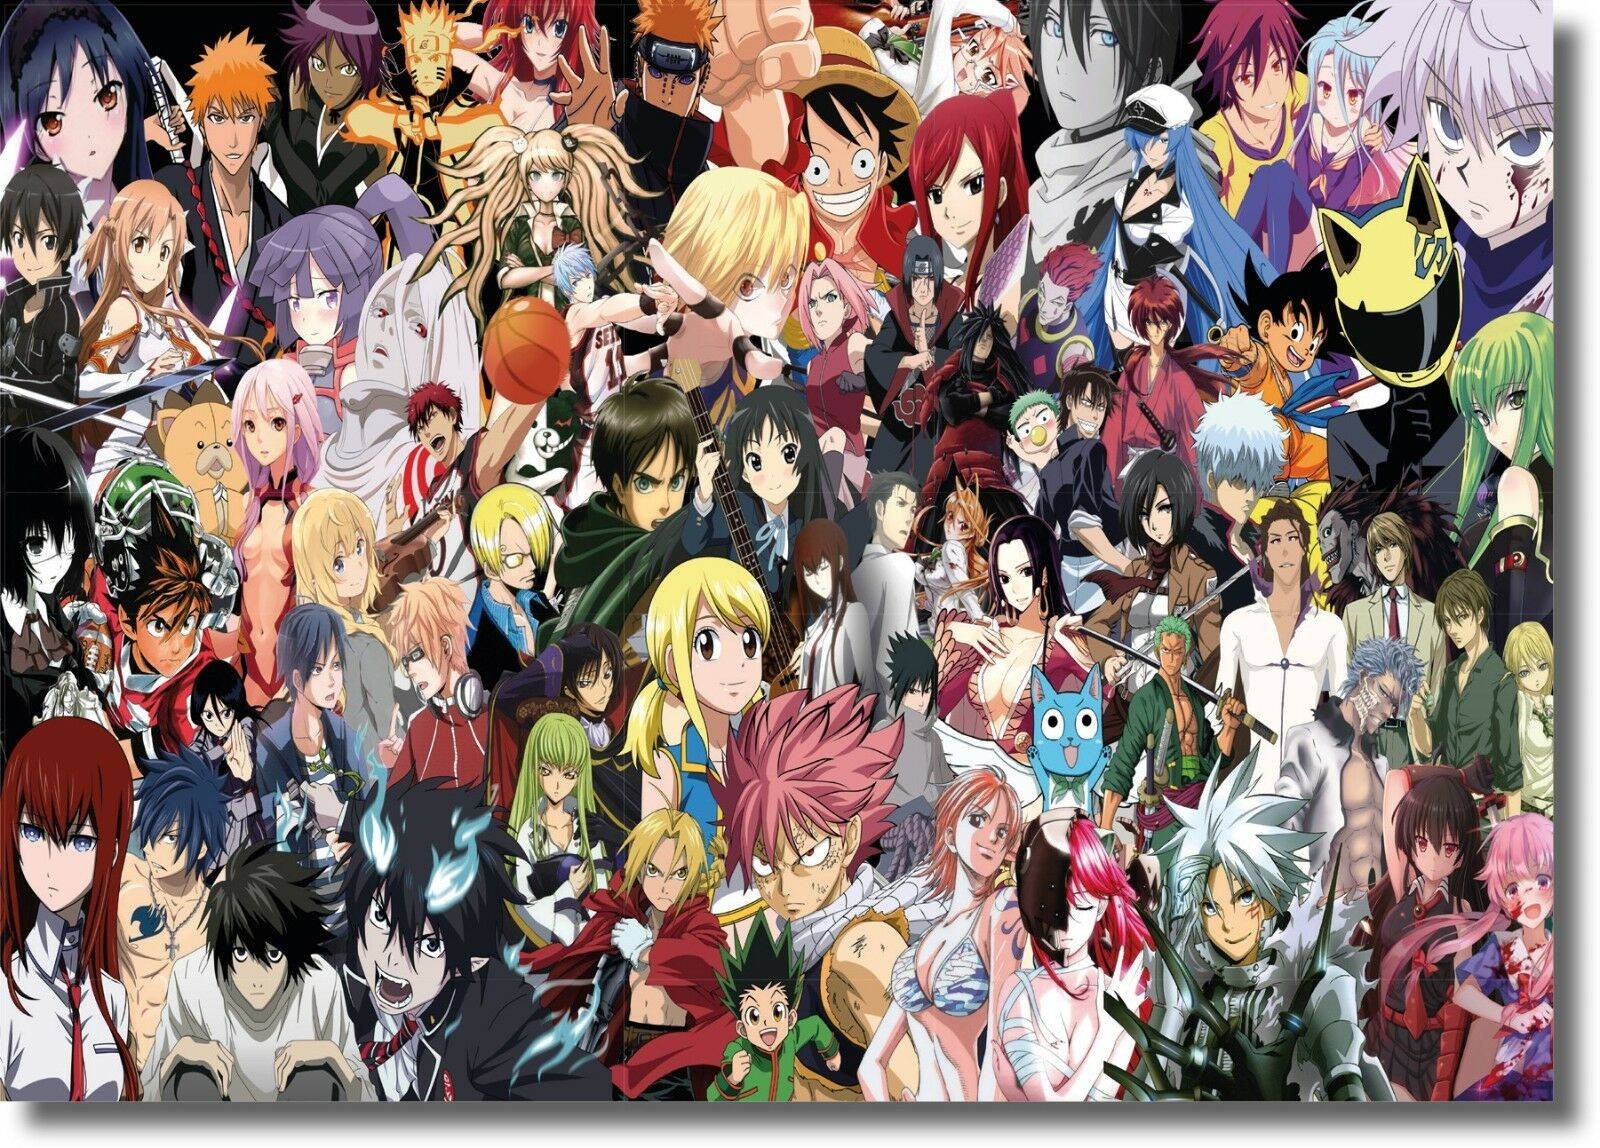 Greatest Anime Characters Collage Framed CANVAS ART PRINT - A0 A1 A2 A3 A4 Größes